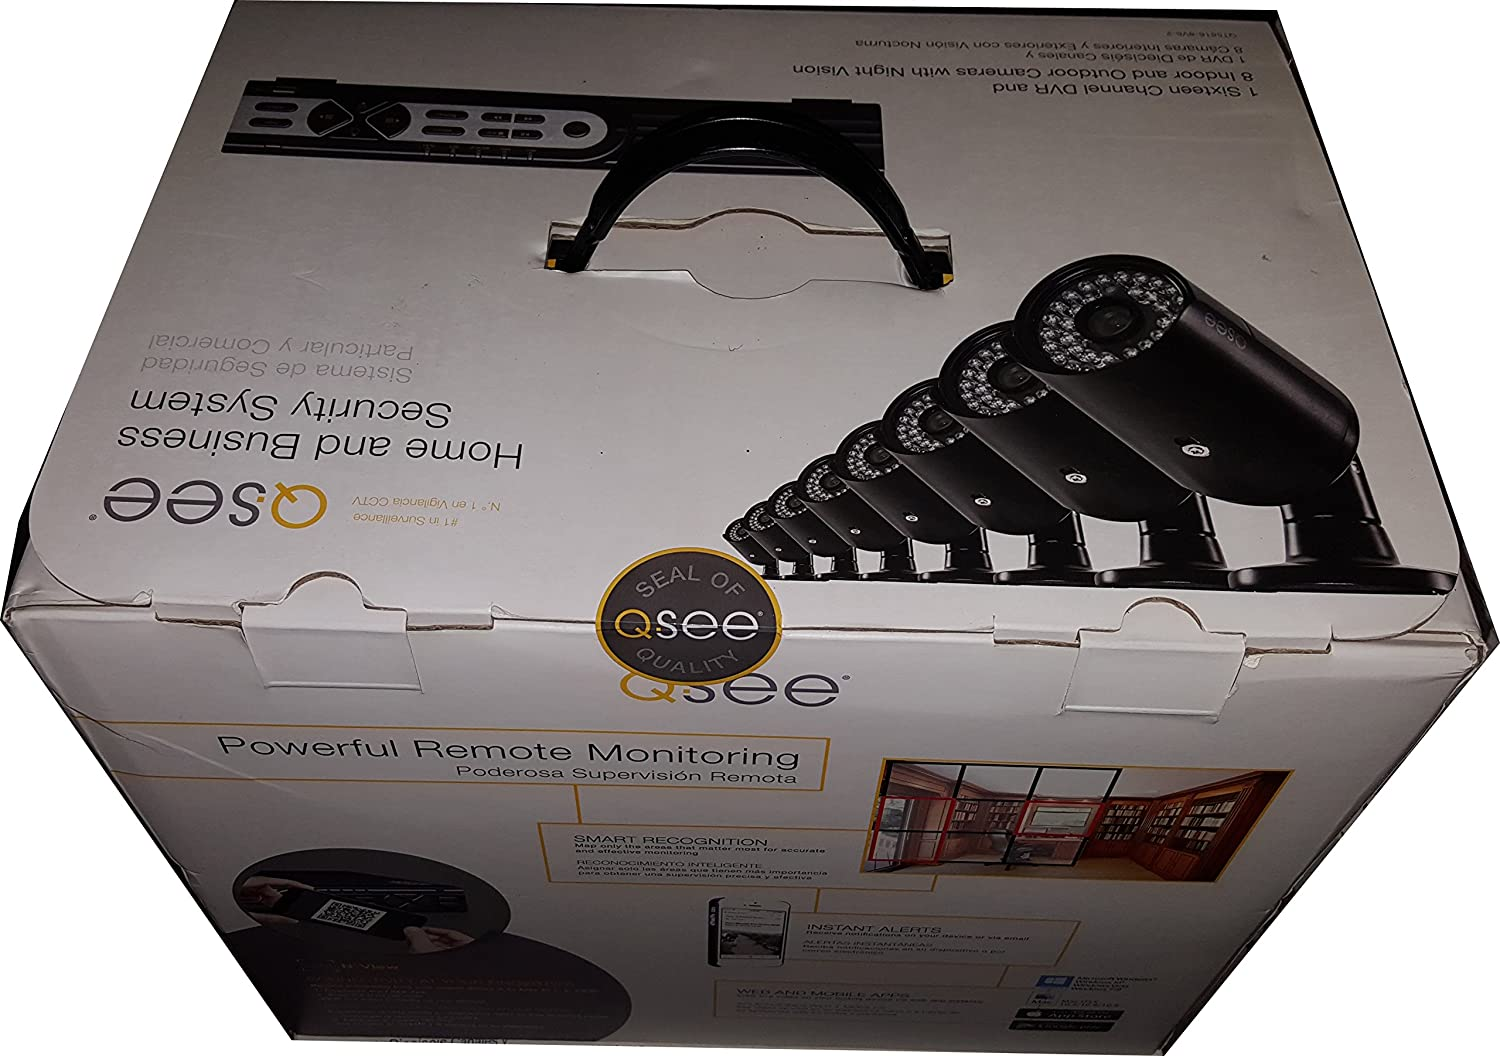 Amazon.com : Q-see Qt5816-8v6-2 16 Channel Security System ...